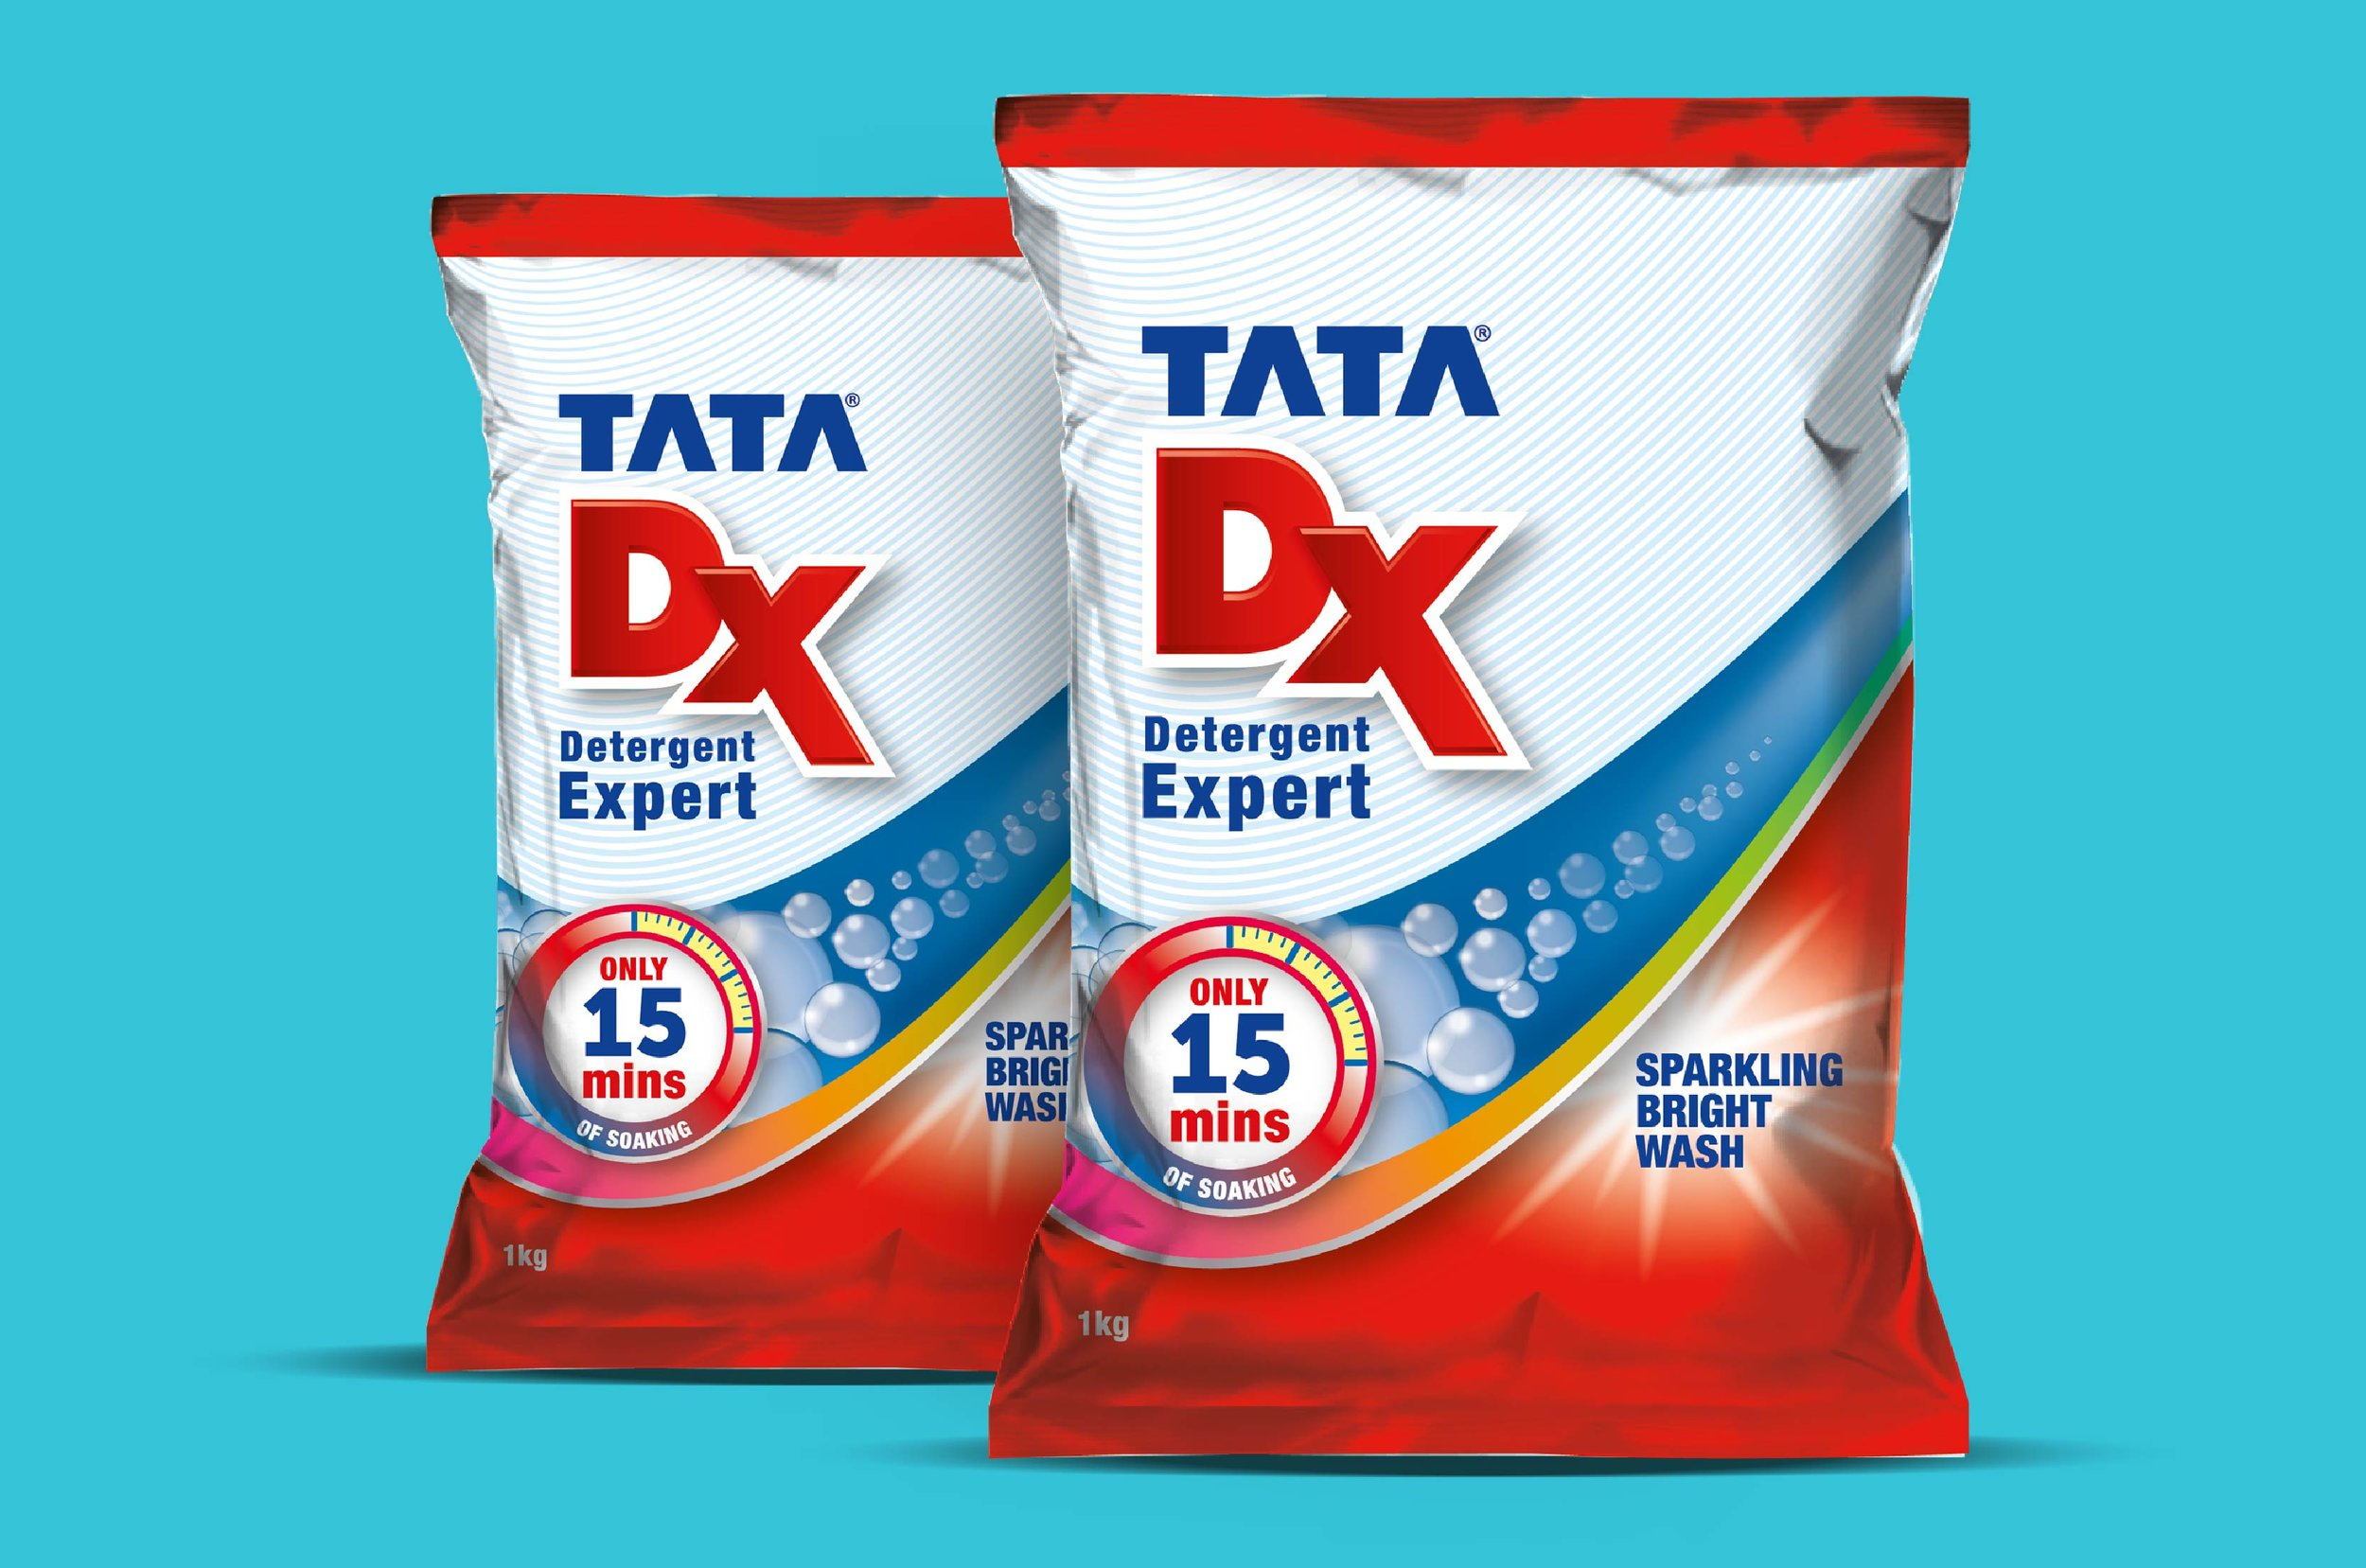 PACKAGING FOR SUPERIOR DETERGENT